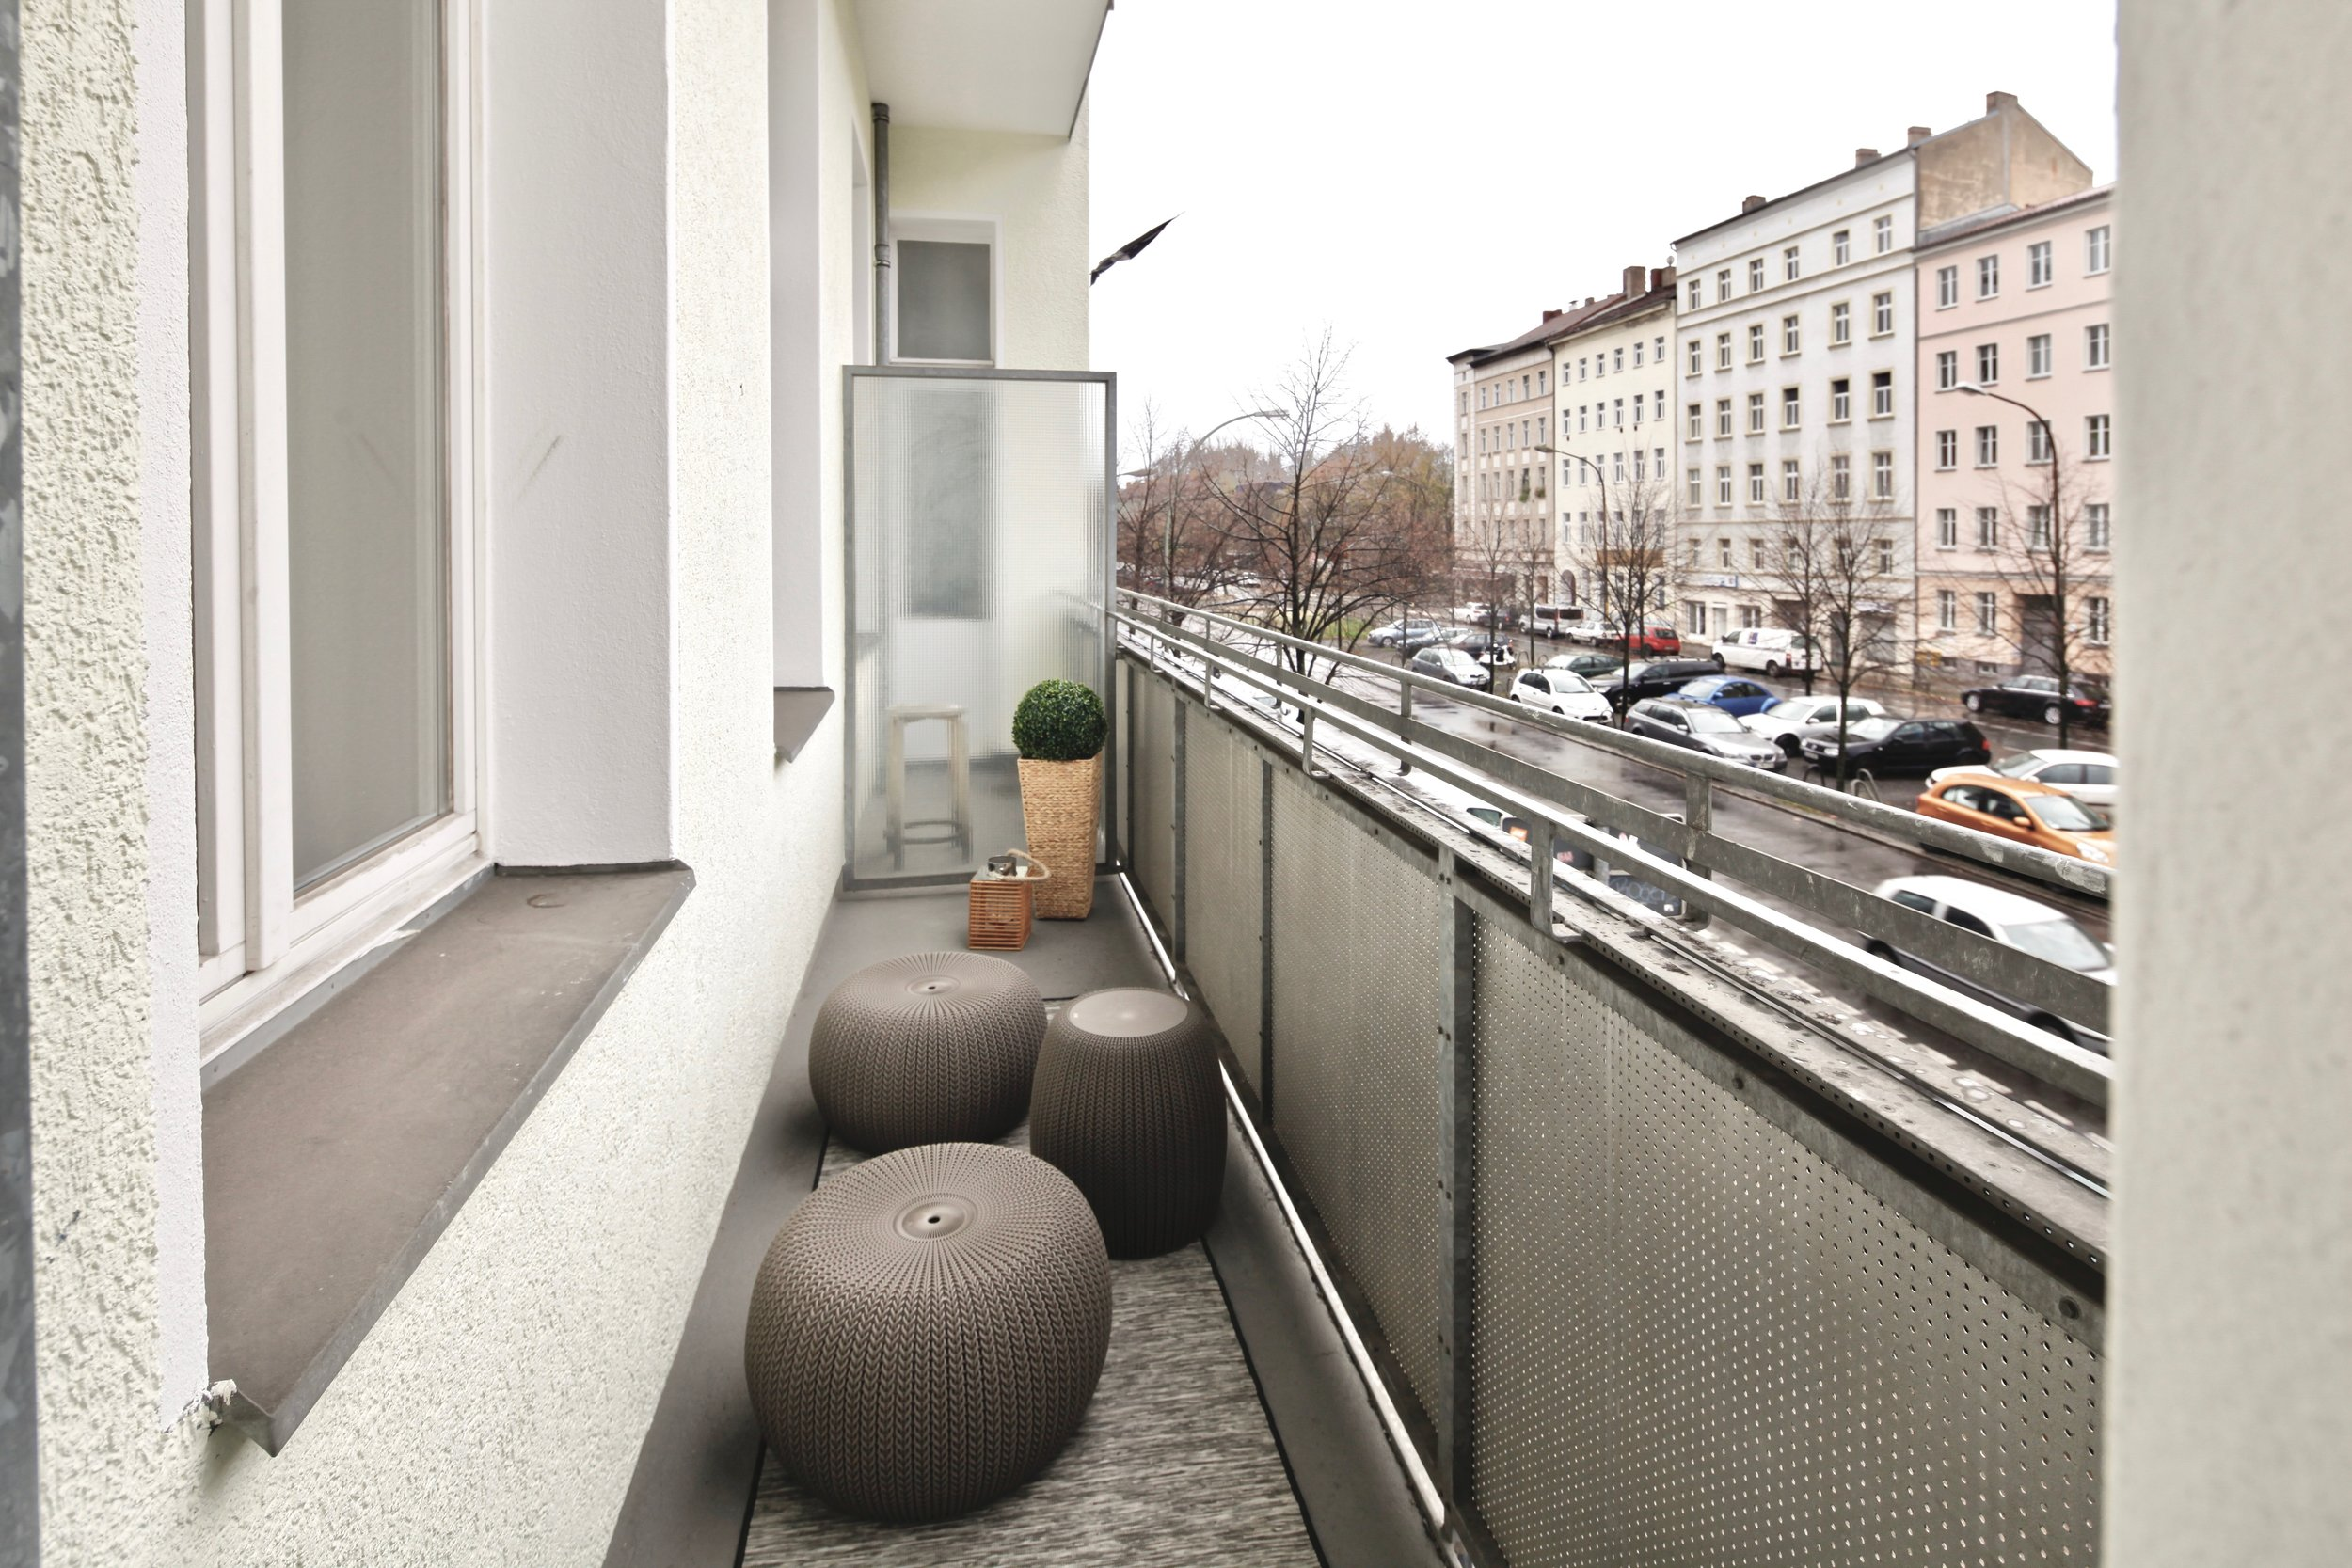 Musterwohnung in residential building in Berlin designed by Revamp